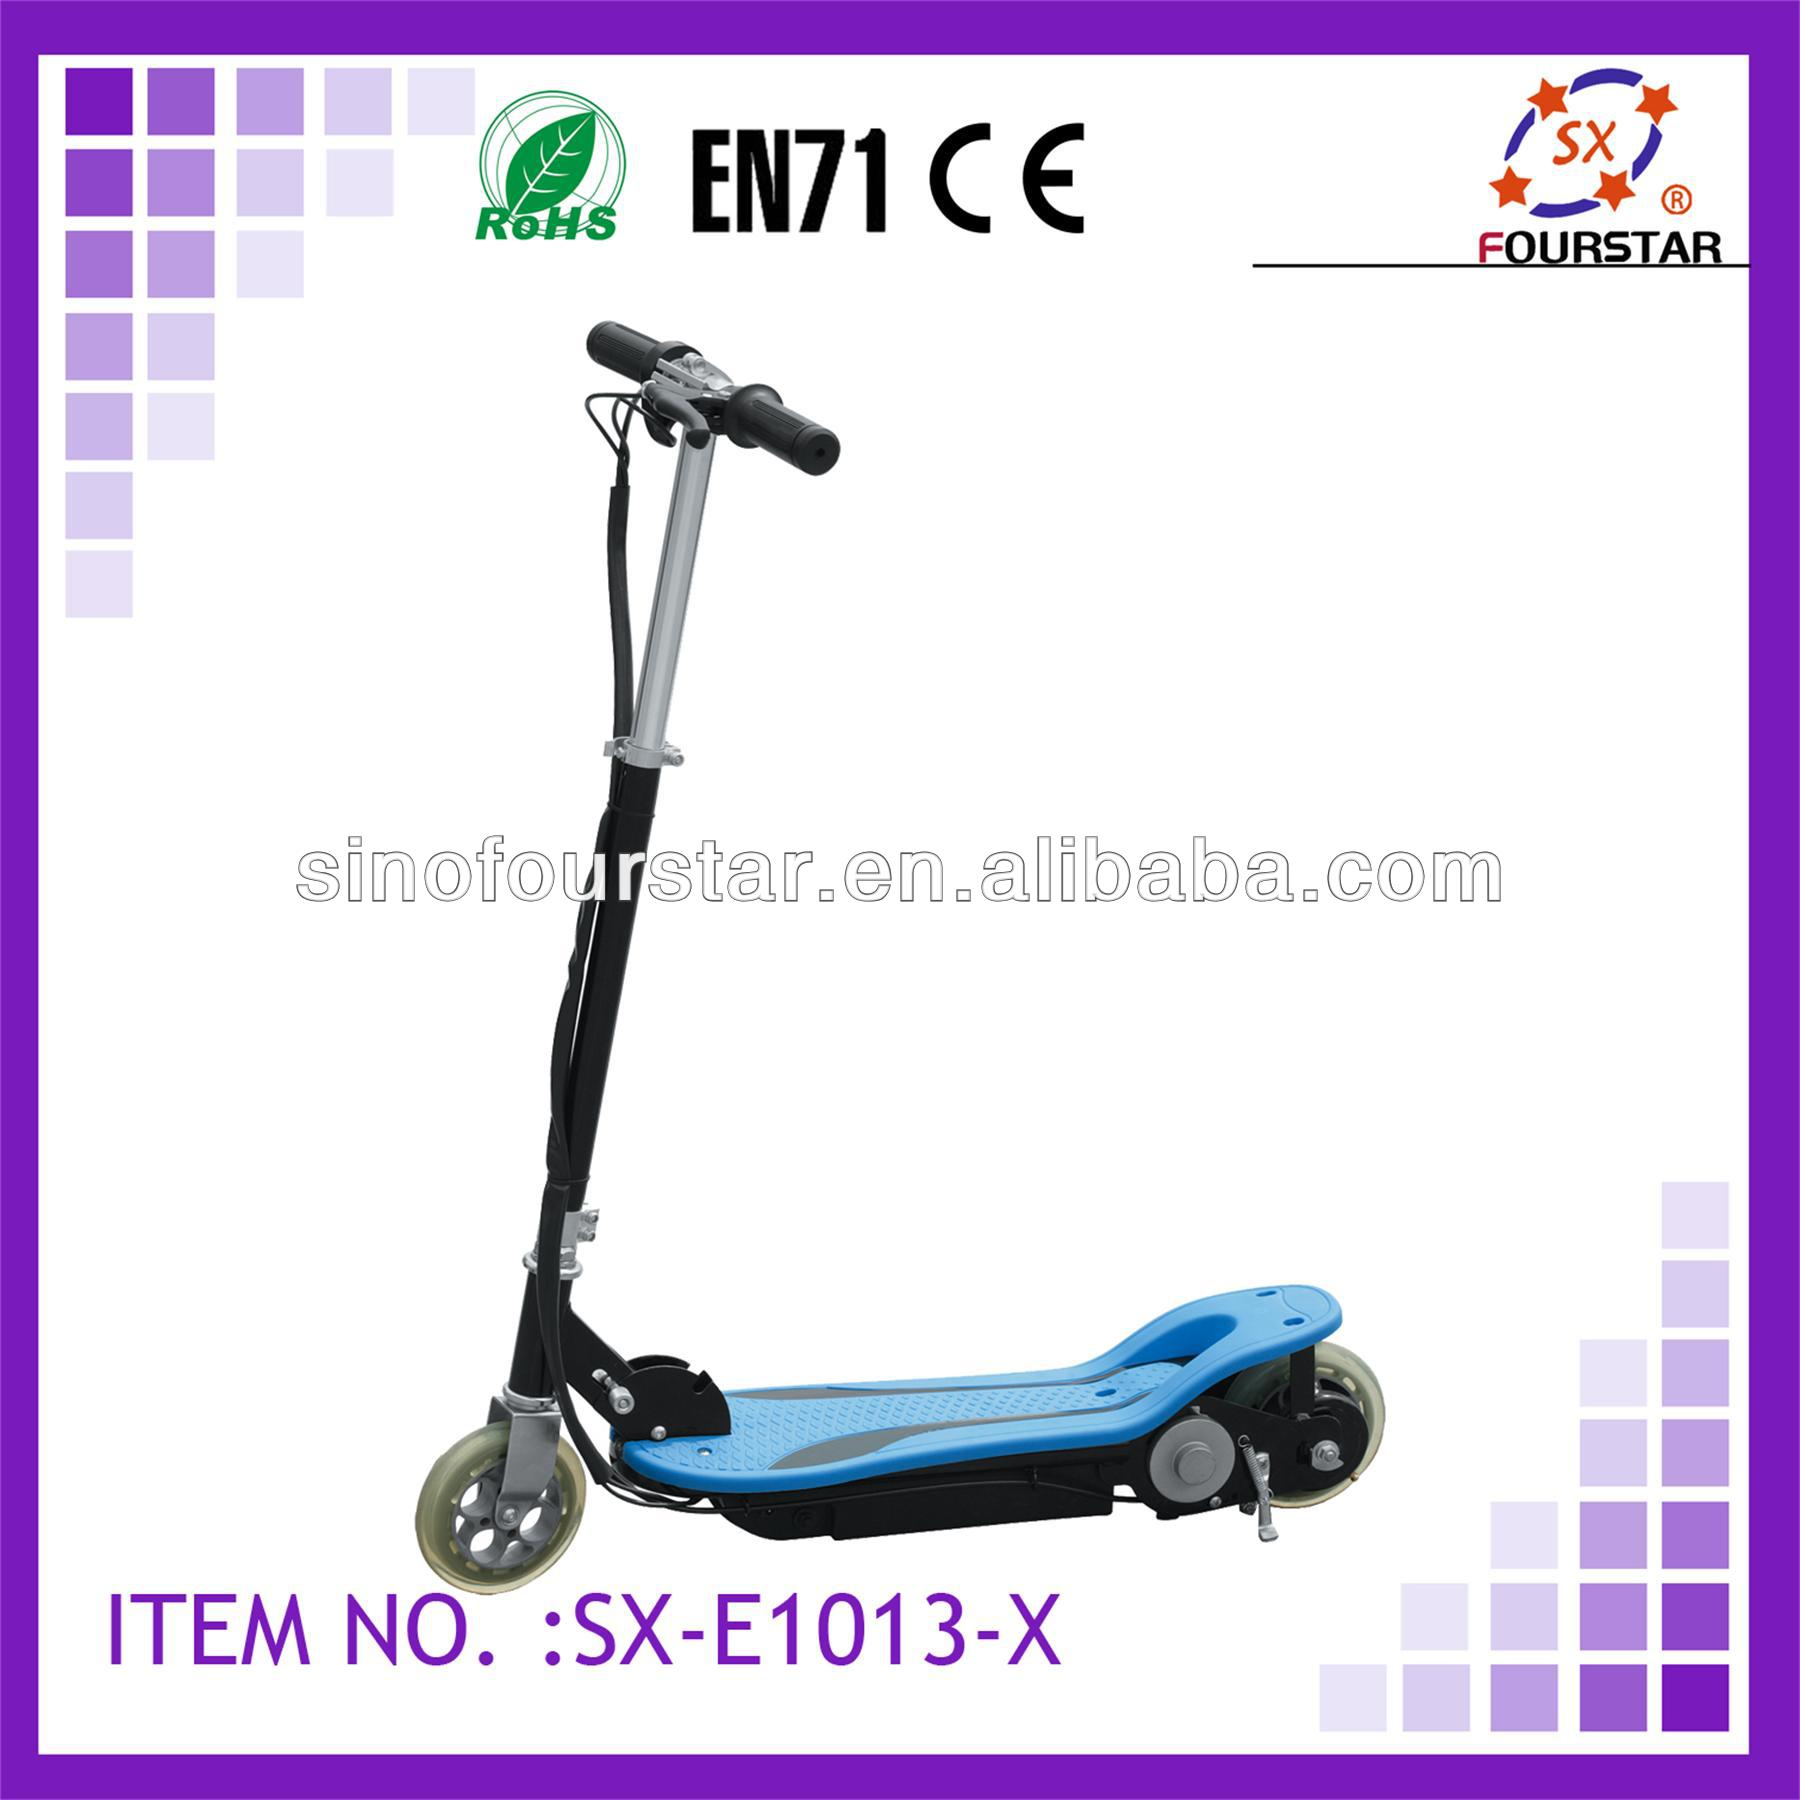 2014 New Model Professional 2 wheel Mini Scooter Electrical CE Approved SX-E1013-X